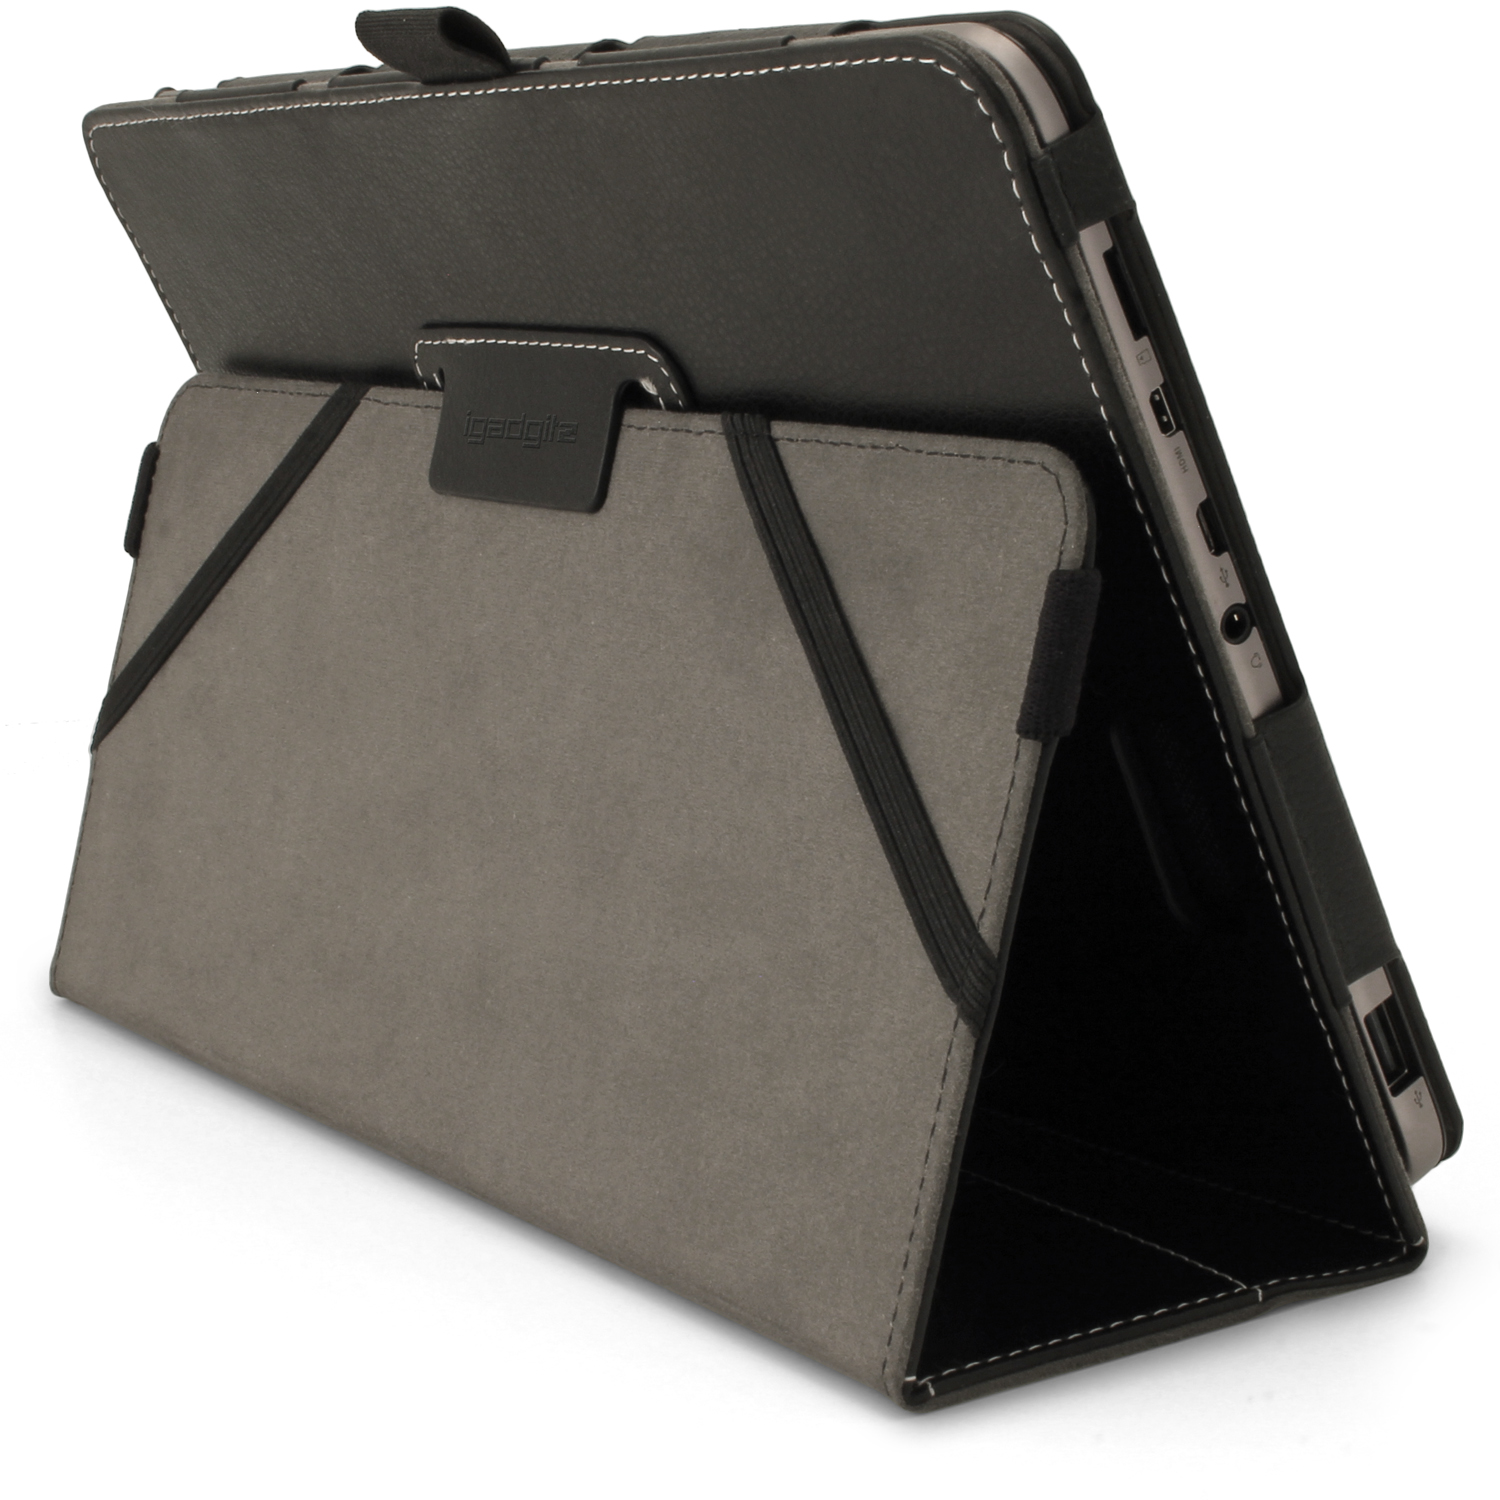 igadgitz pu leather case for asus transformer book t101ha 10 1